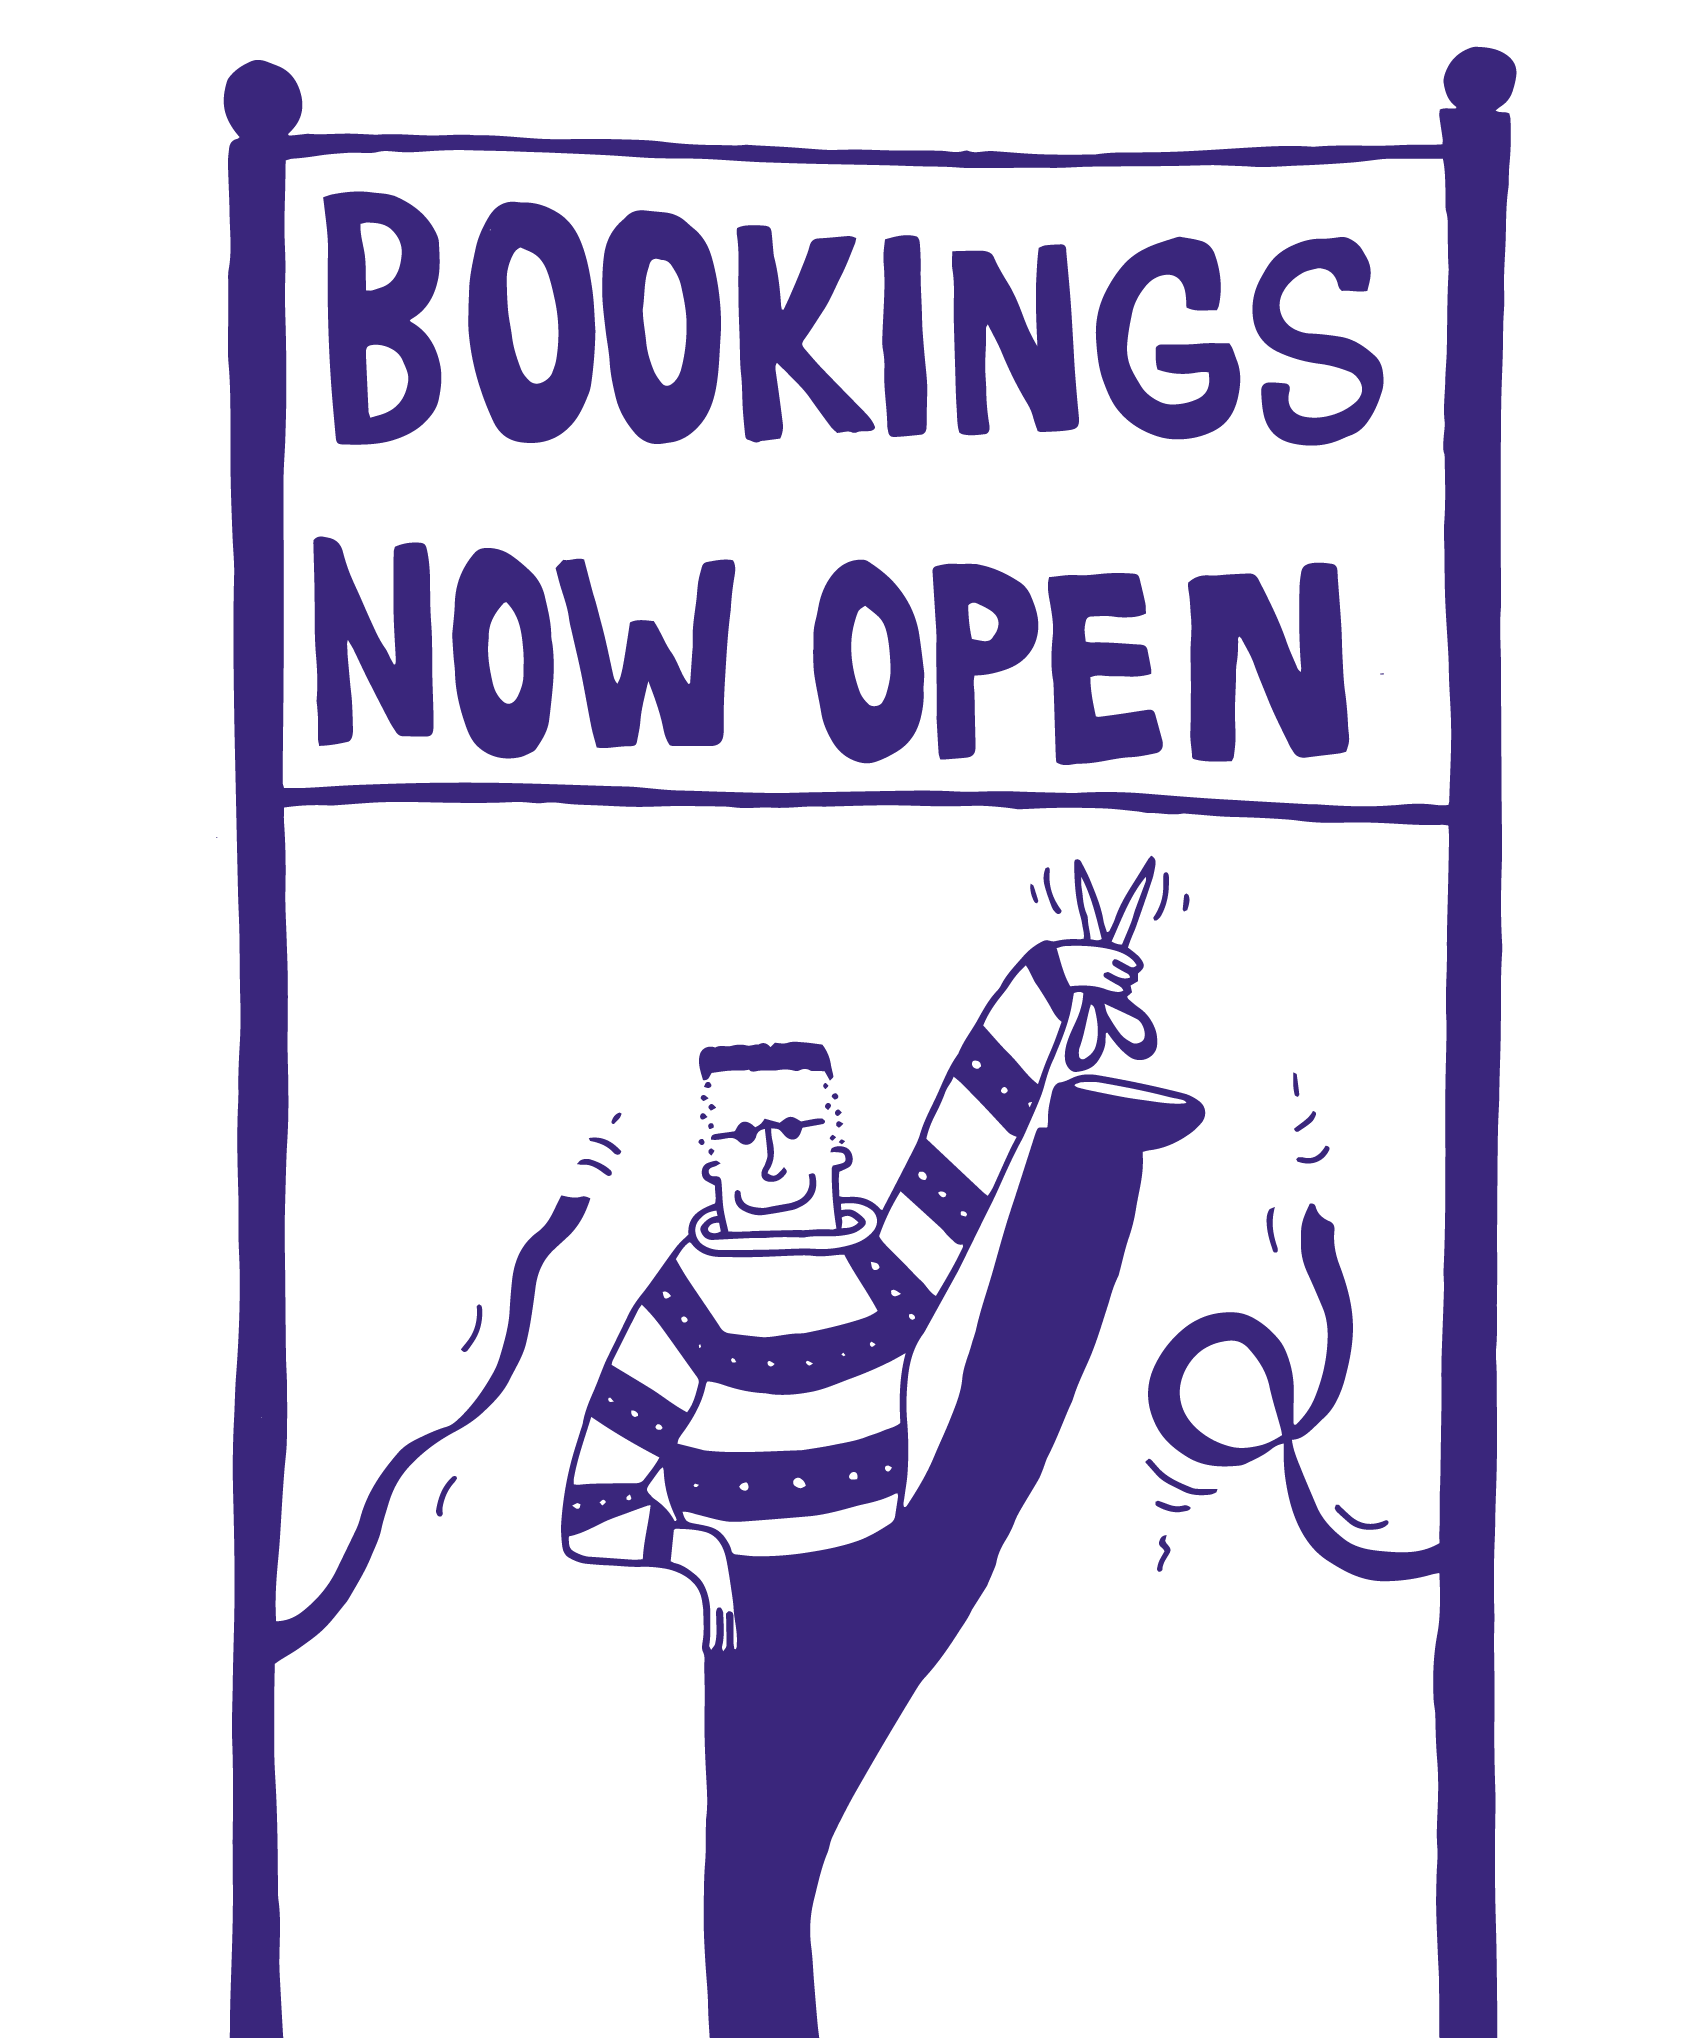 bookings_now_open.png